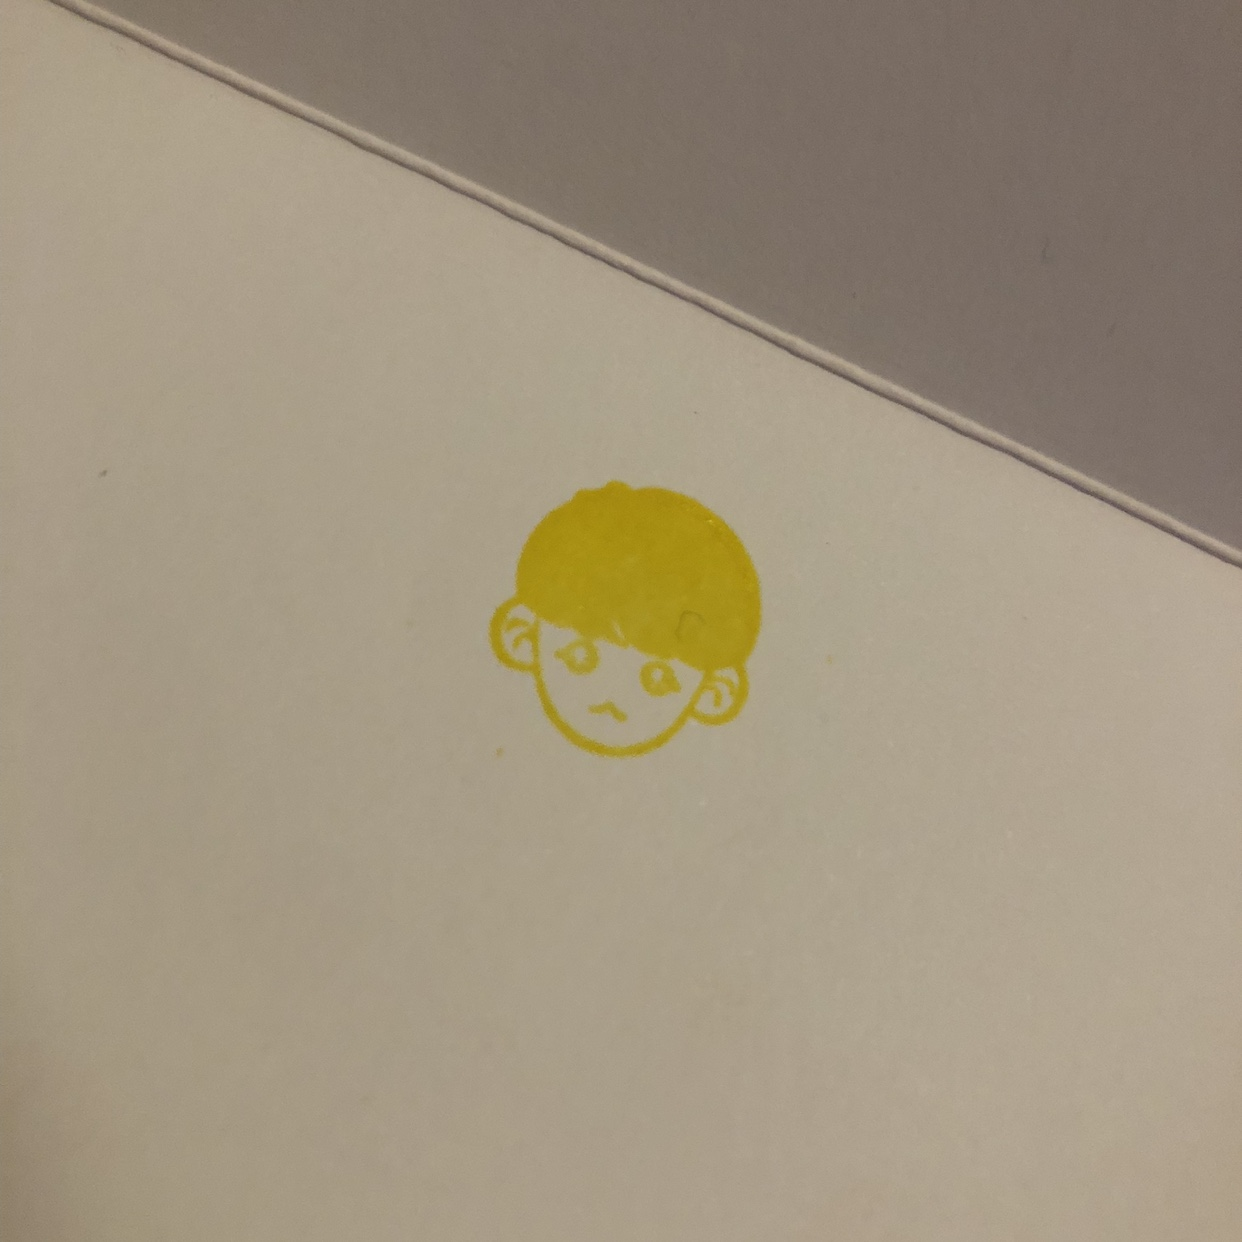 bts 4th muster in japan happily ever after stamp    - Depop